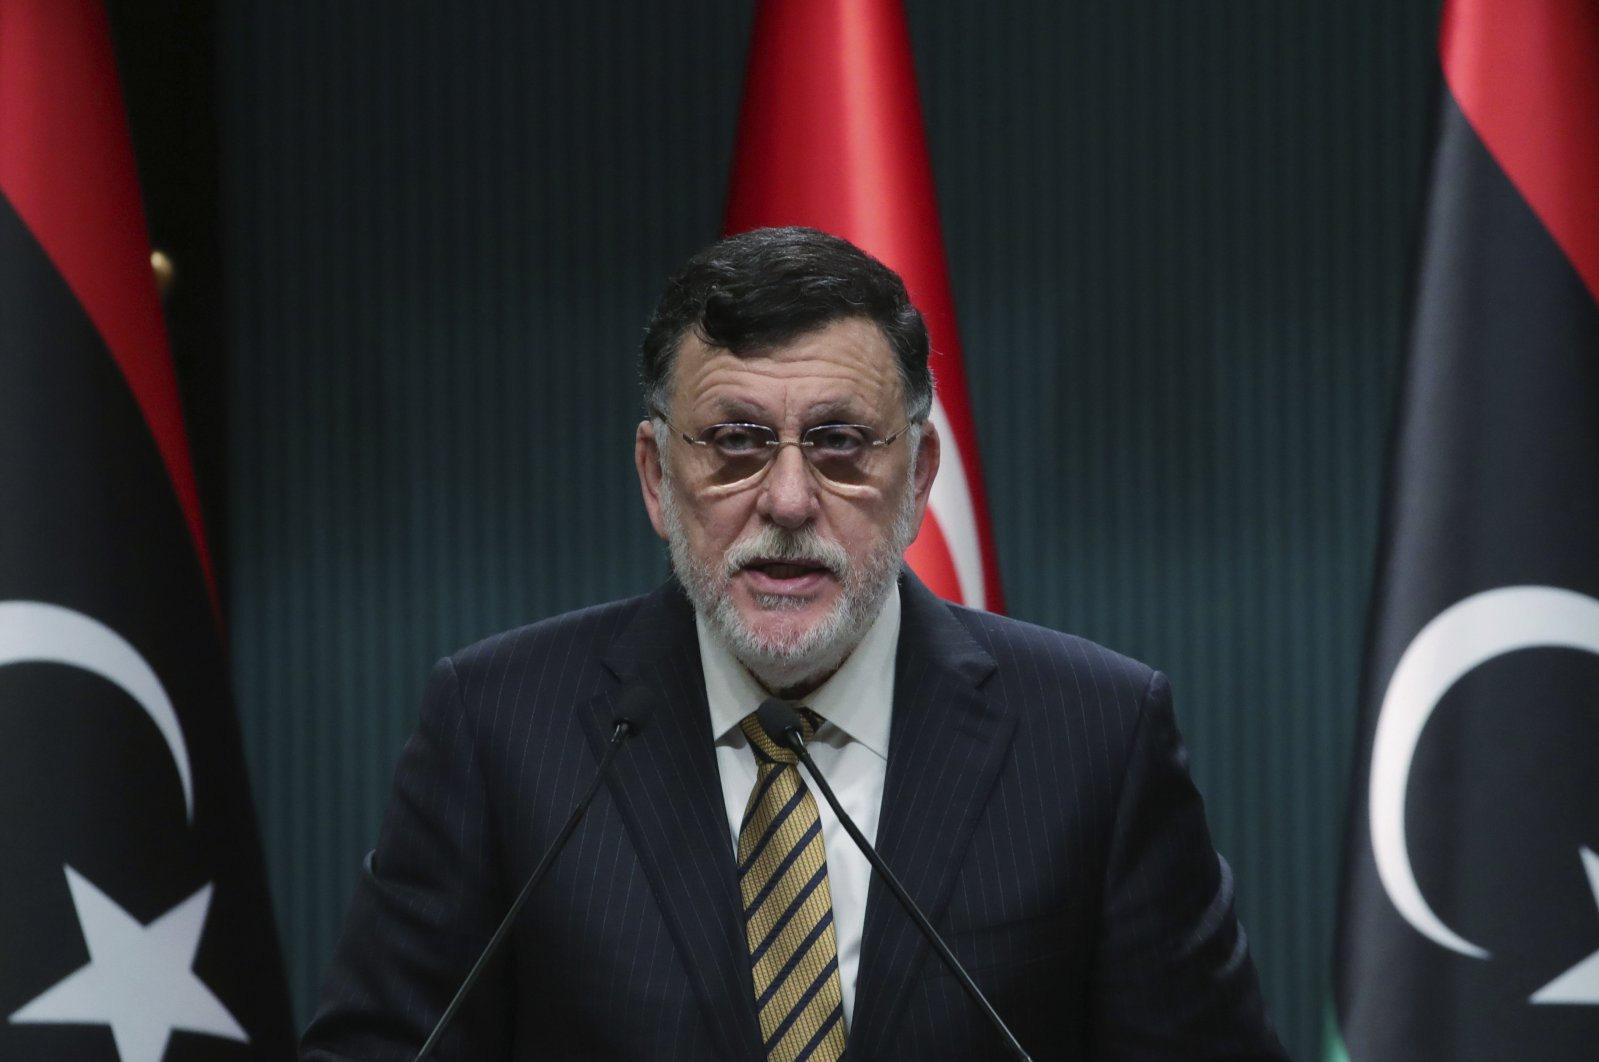 Fayez Sarraj, the head of Libya's internationally recognized government, speaks at a joint news conference with President Recep Tayyip Erdoğan, in Ankara, Turkey, June 4, 2020. (Turkish Presidency via AP)